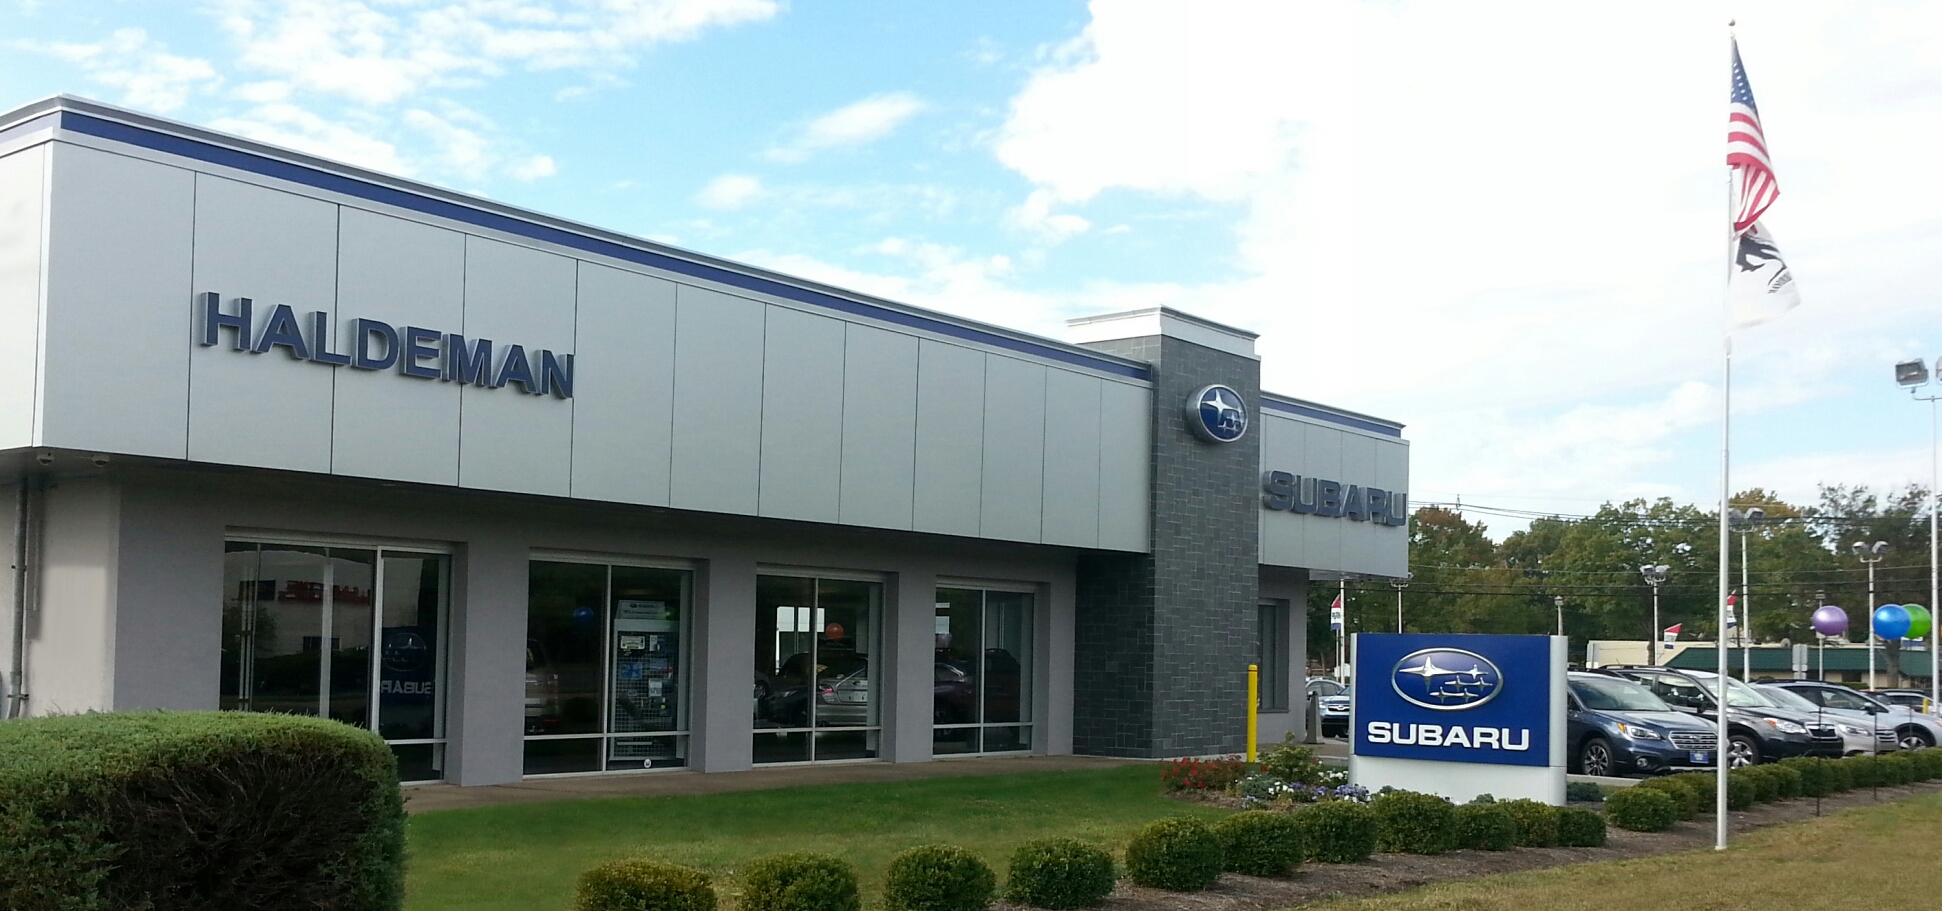 Haldeman Subaru In Hamilton NJ - Haldeman ford car show